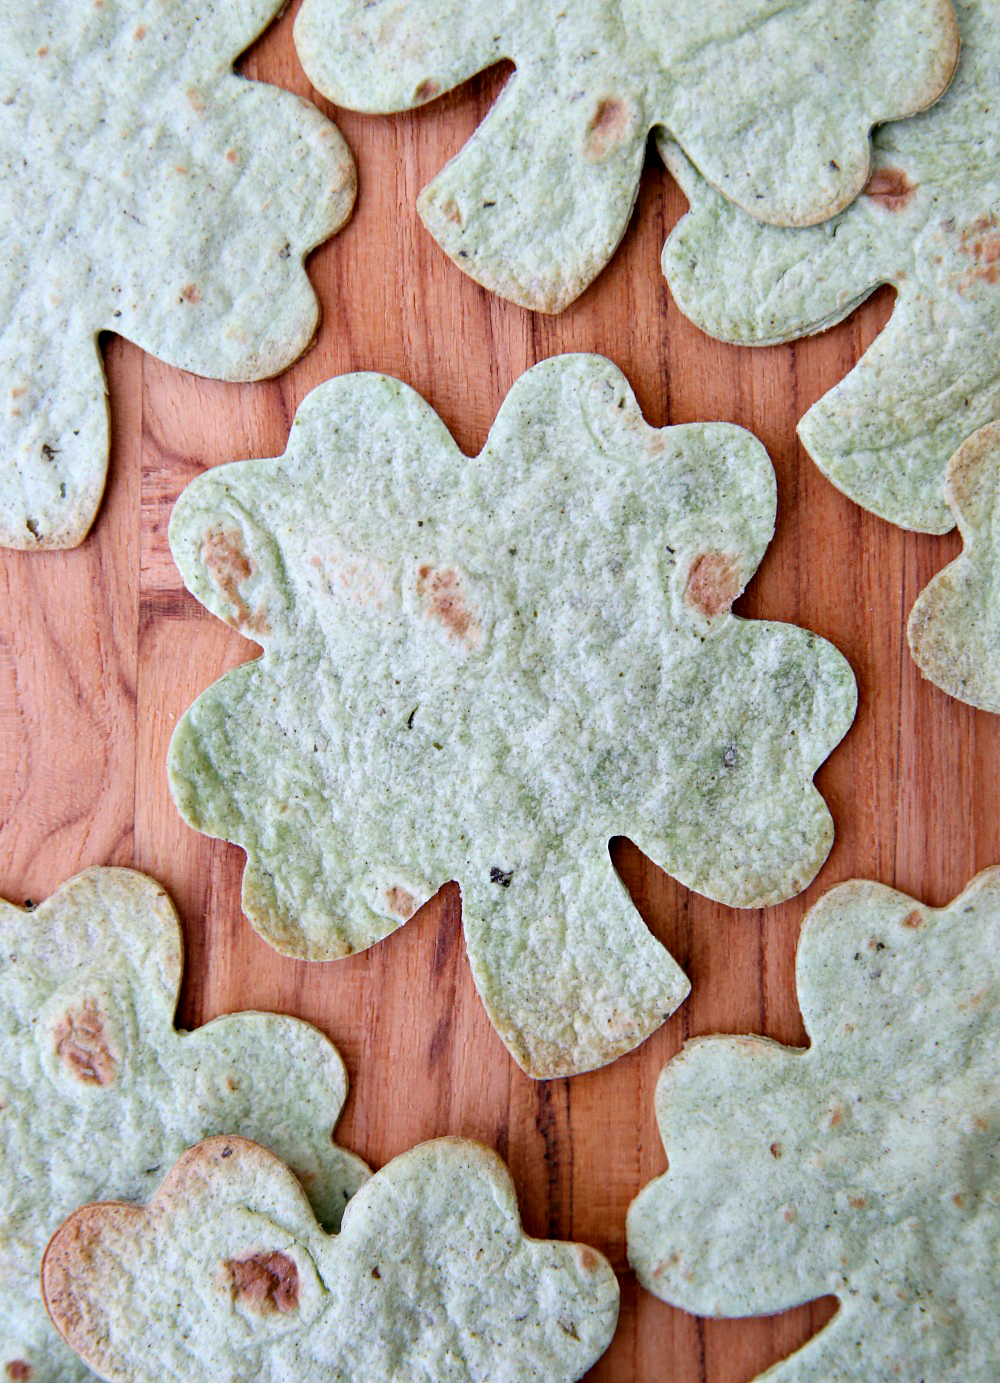 Shamrock Tortillas - Easy St. Patrick's Day Appetizers